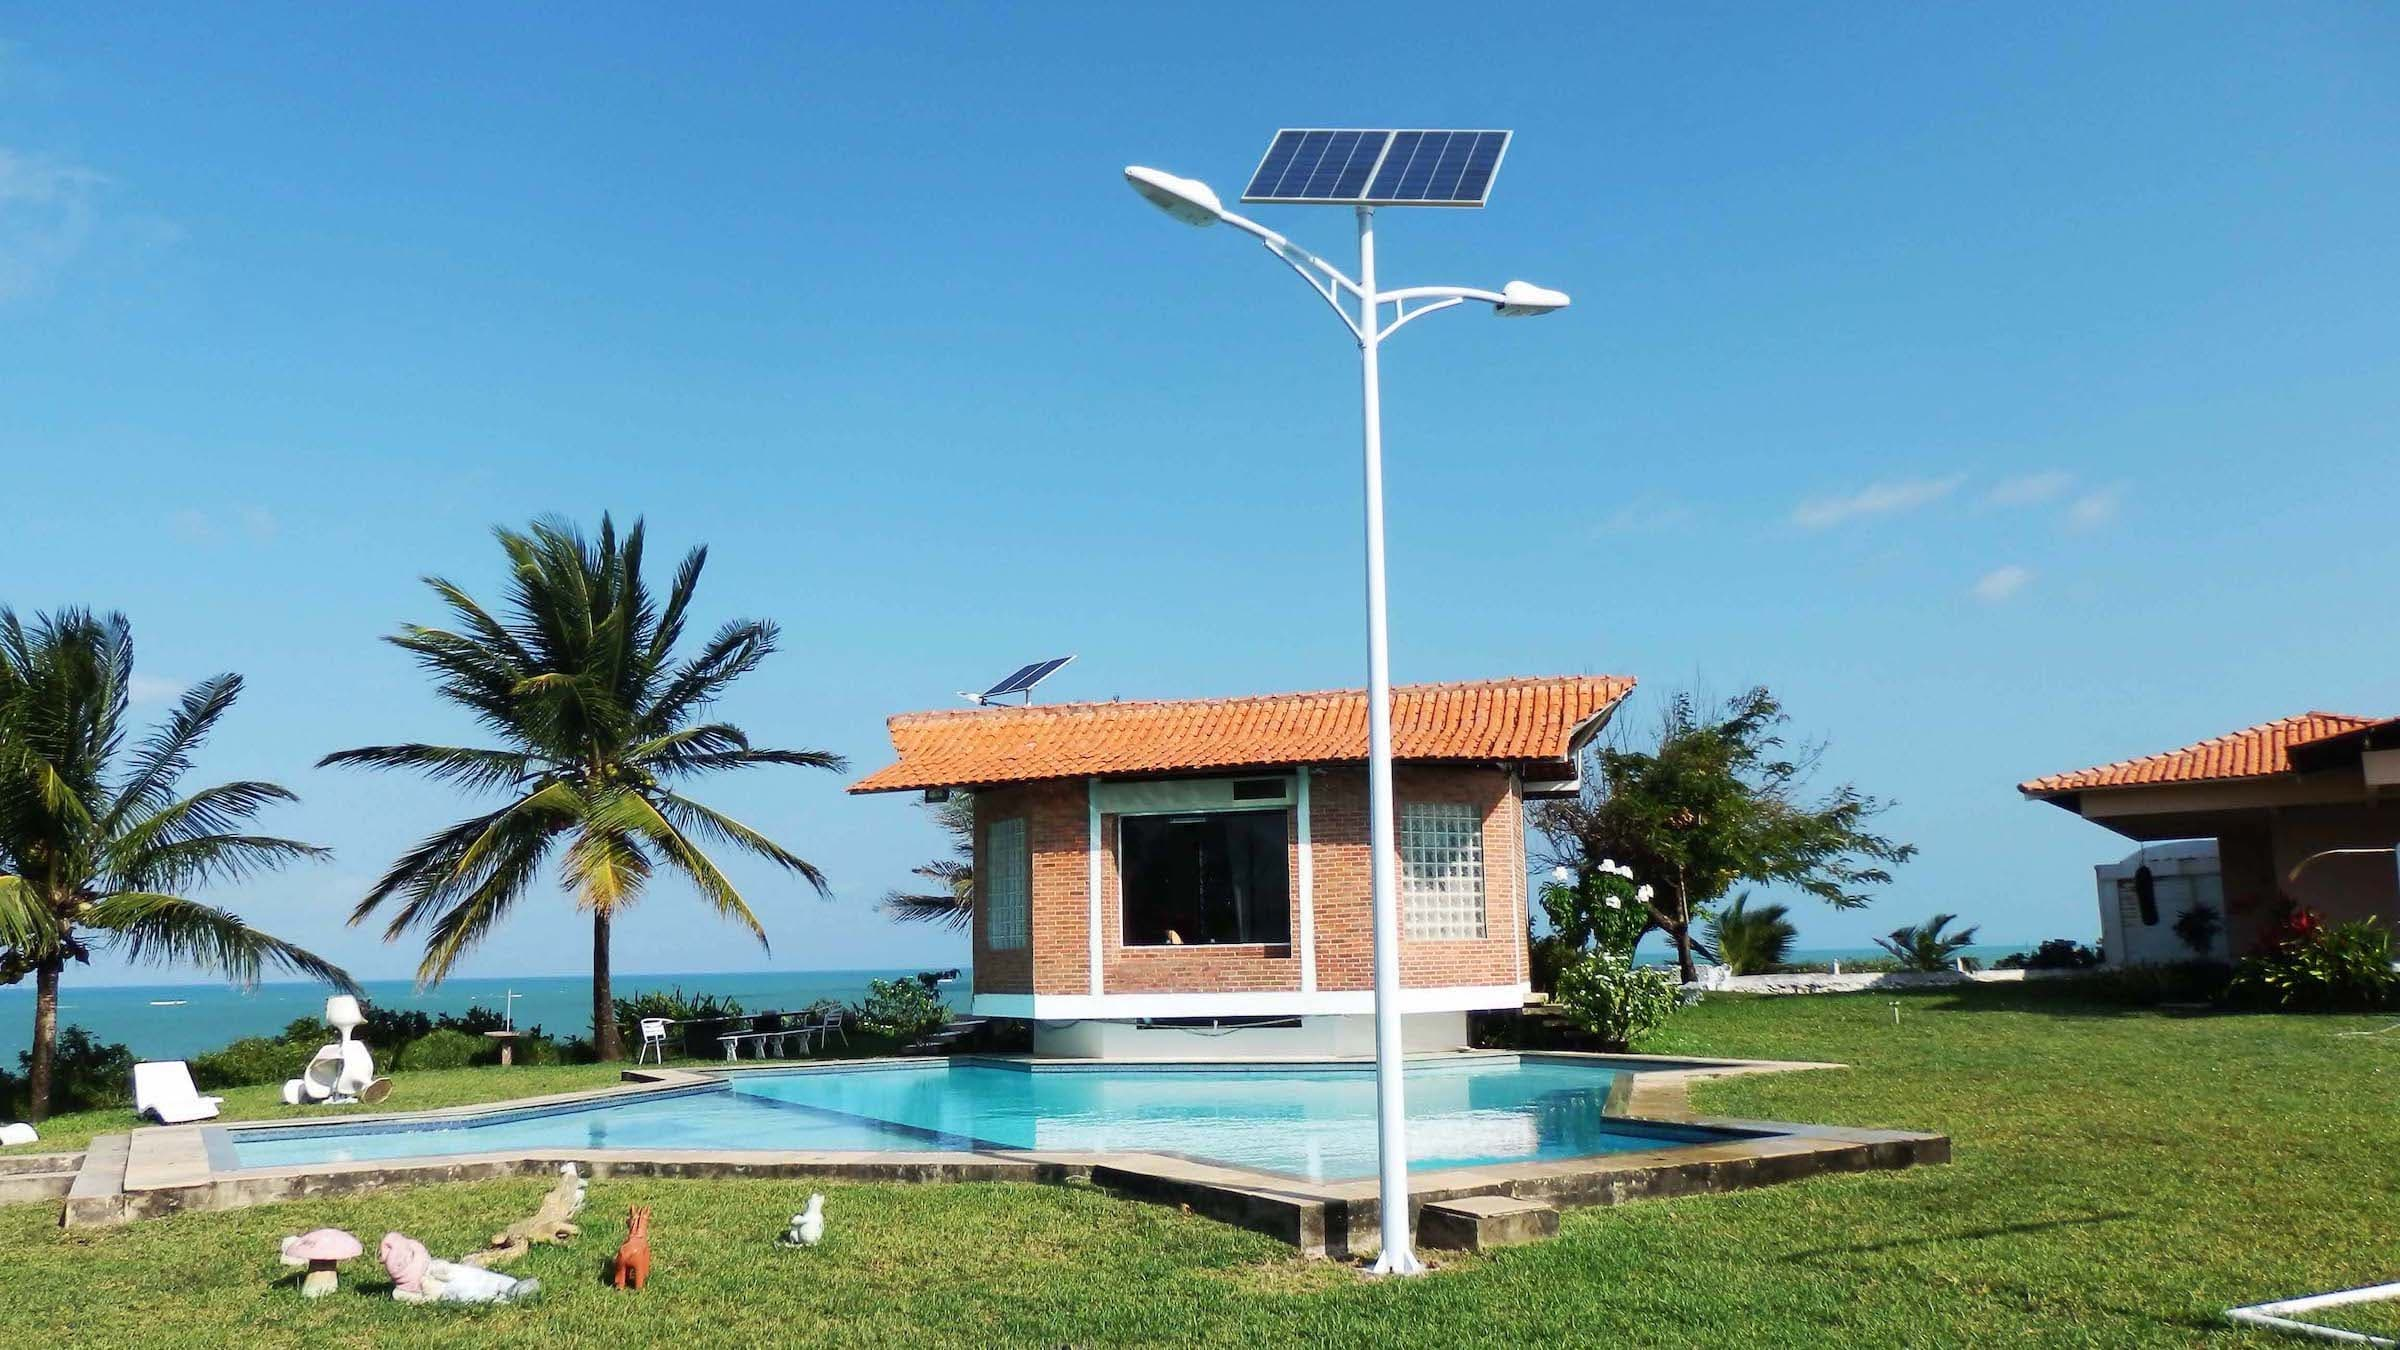 Solar street light 35w project in Brazil include the 160w solar panel, 150AH gel battery,35w lamp, 6m pole and 10A controller designed to run 8-12 hours a day